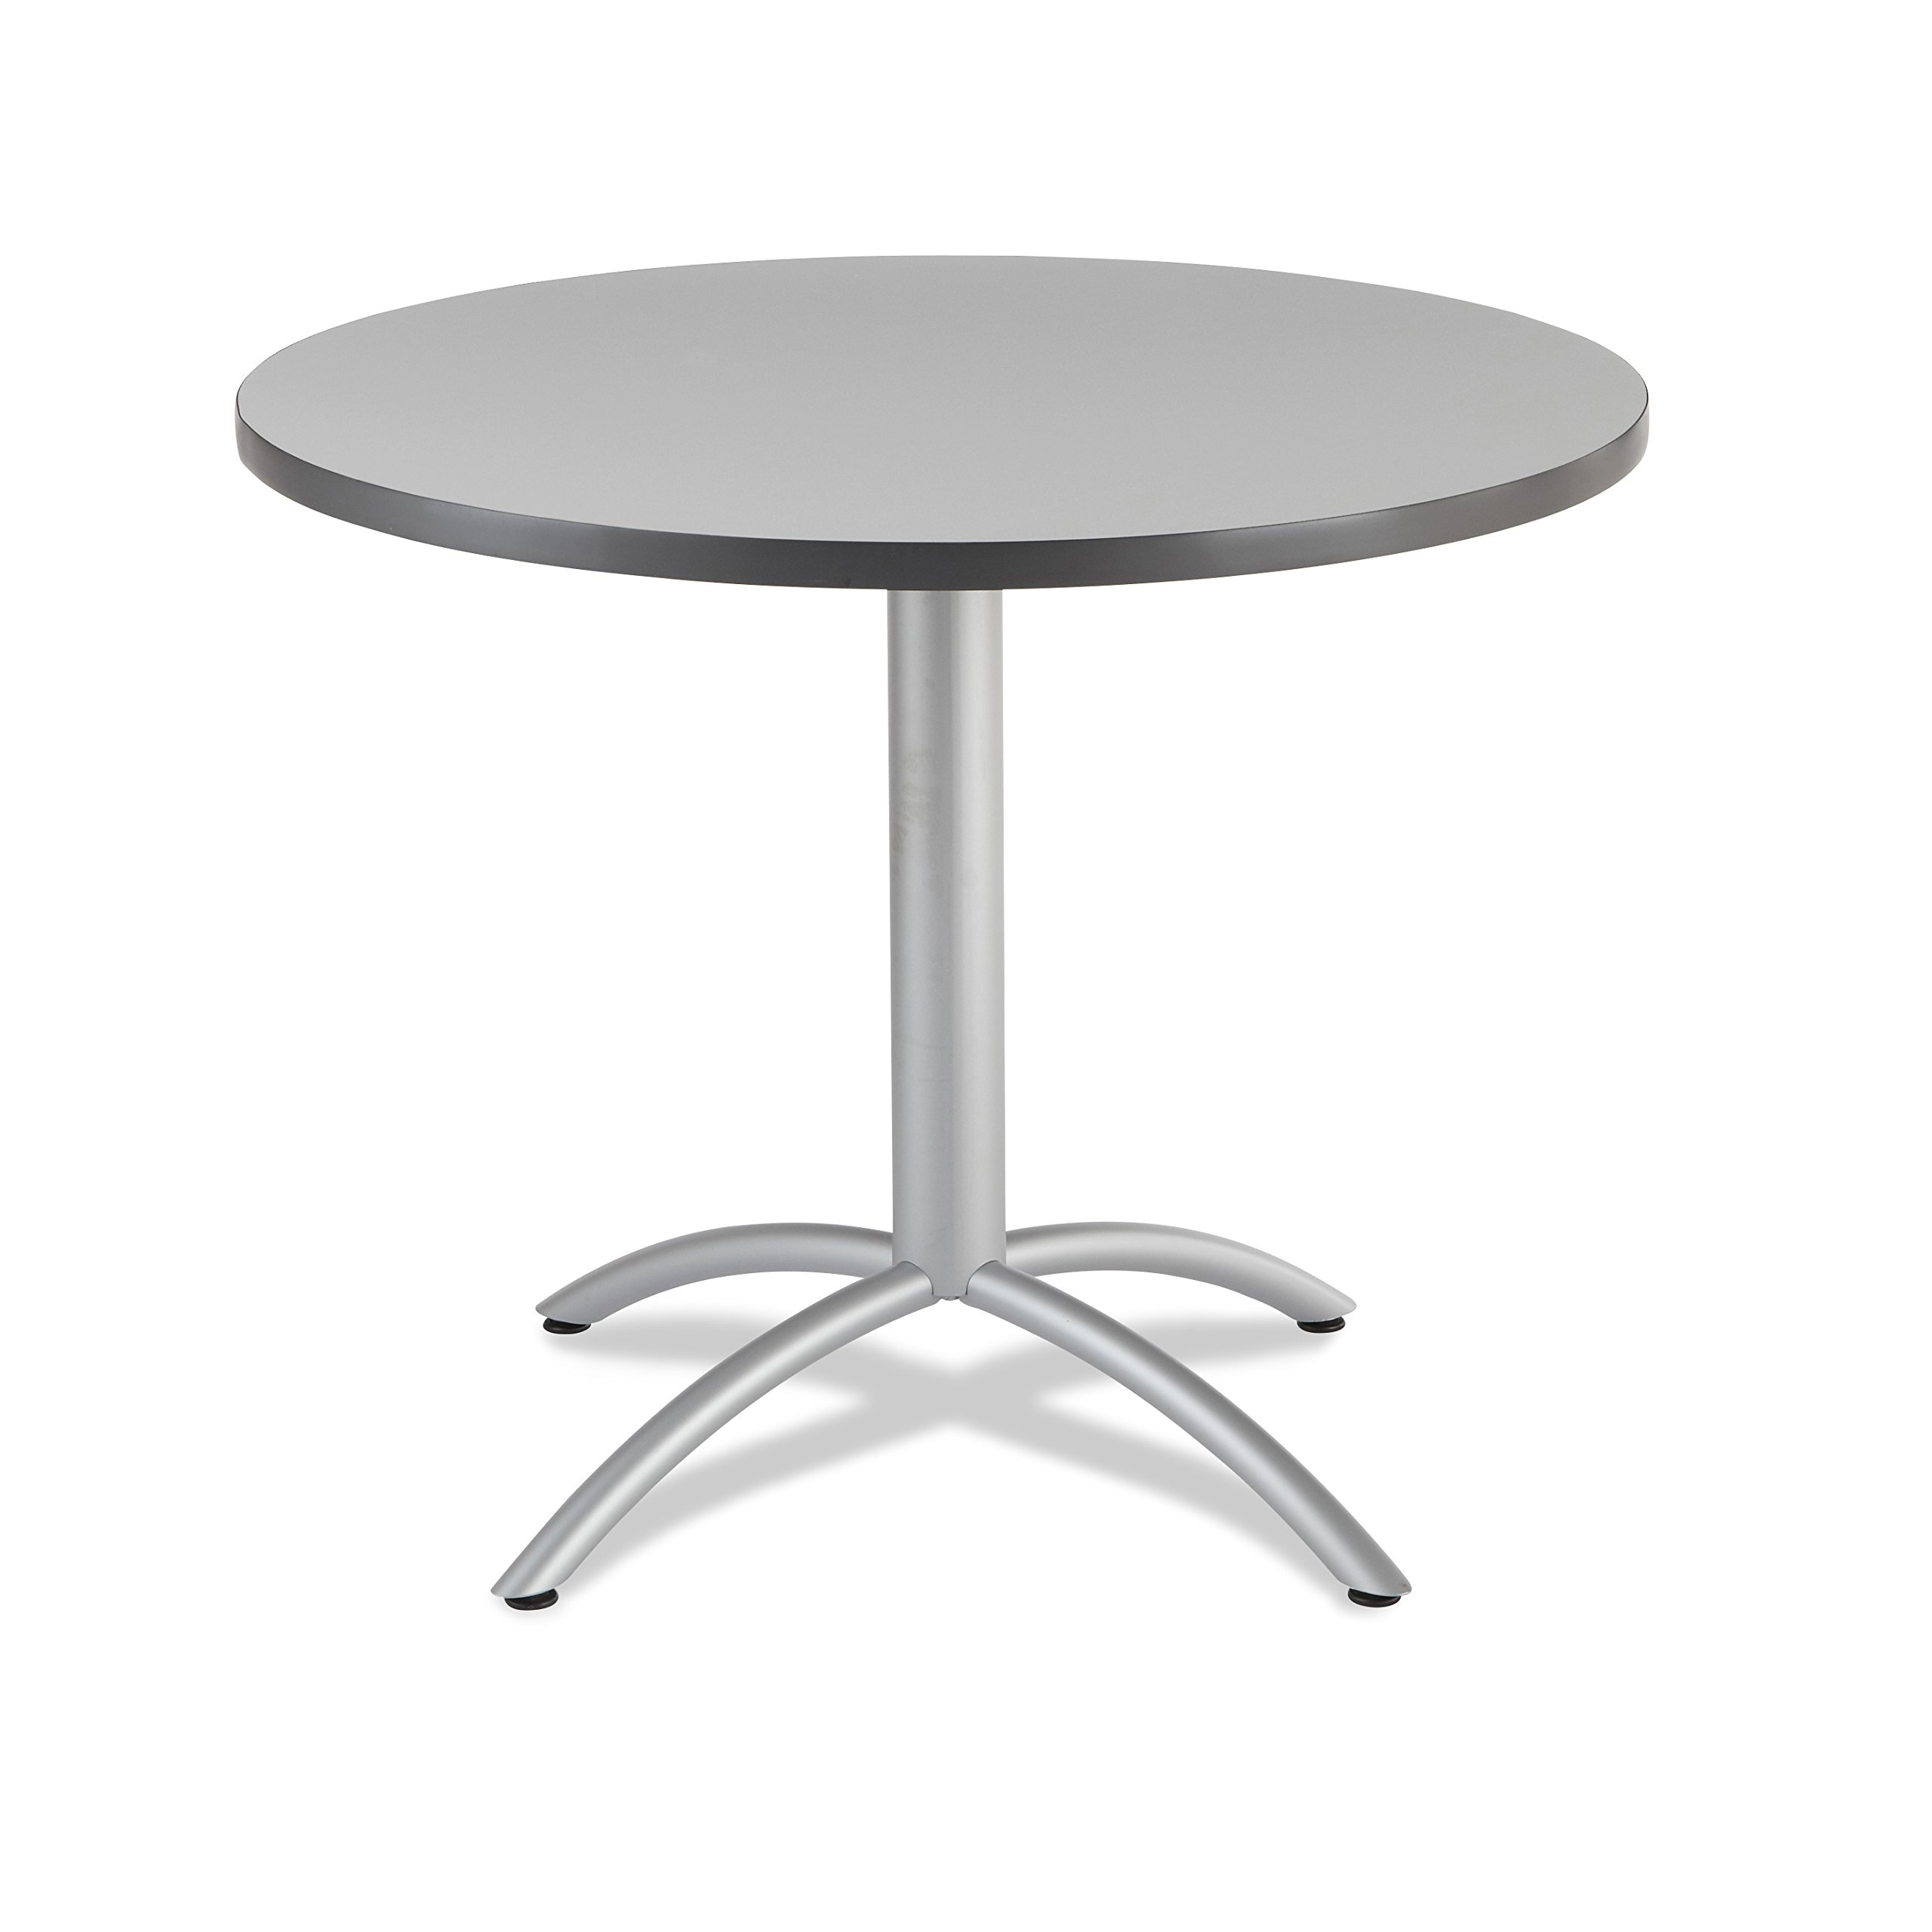 Iceberg 65647 CafeWorks Cafe/Meeting Table, 42'' Round, Gray